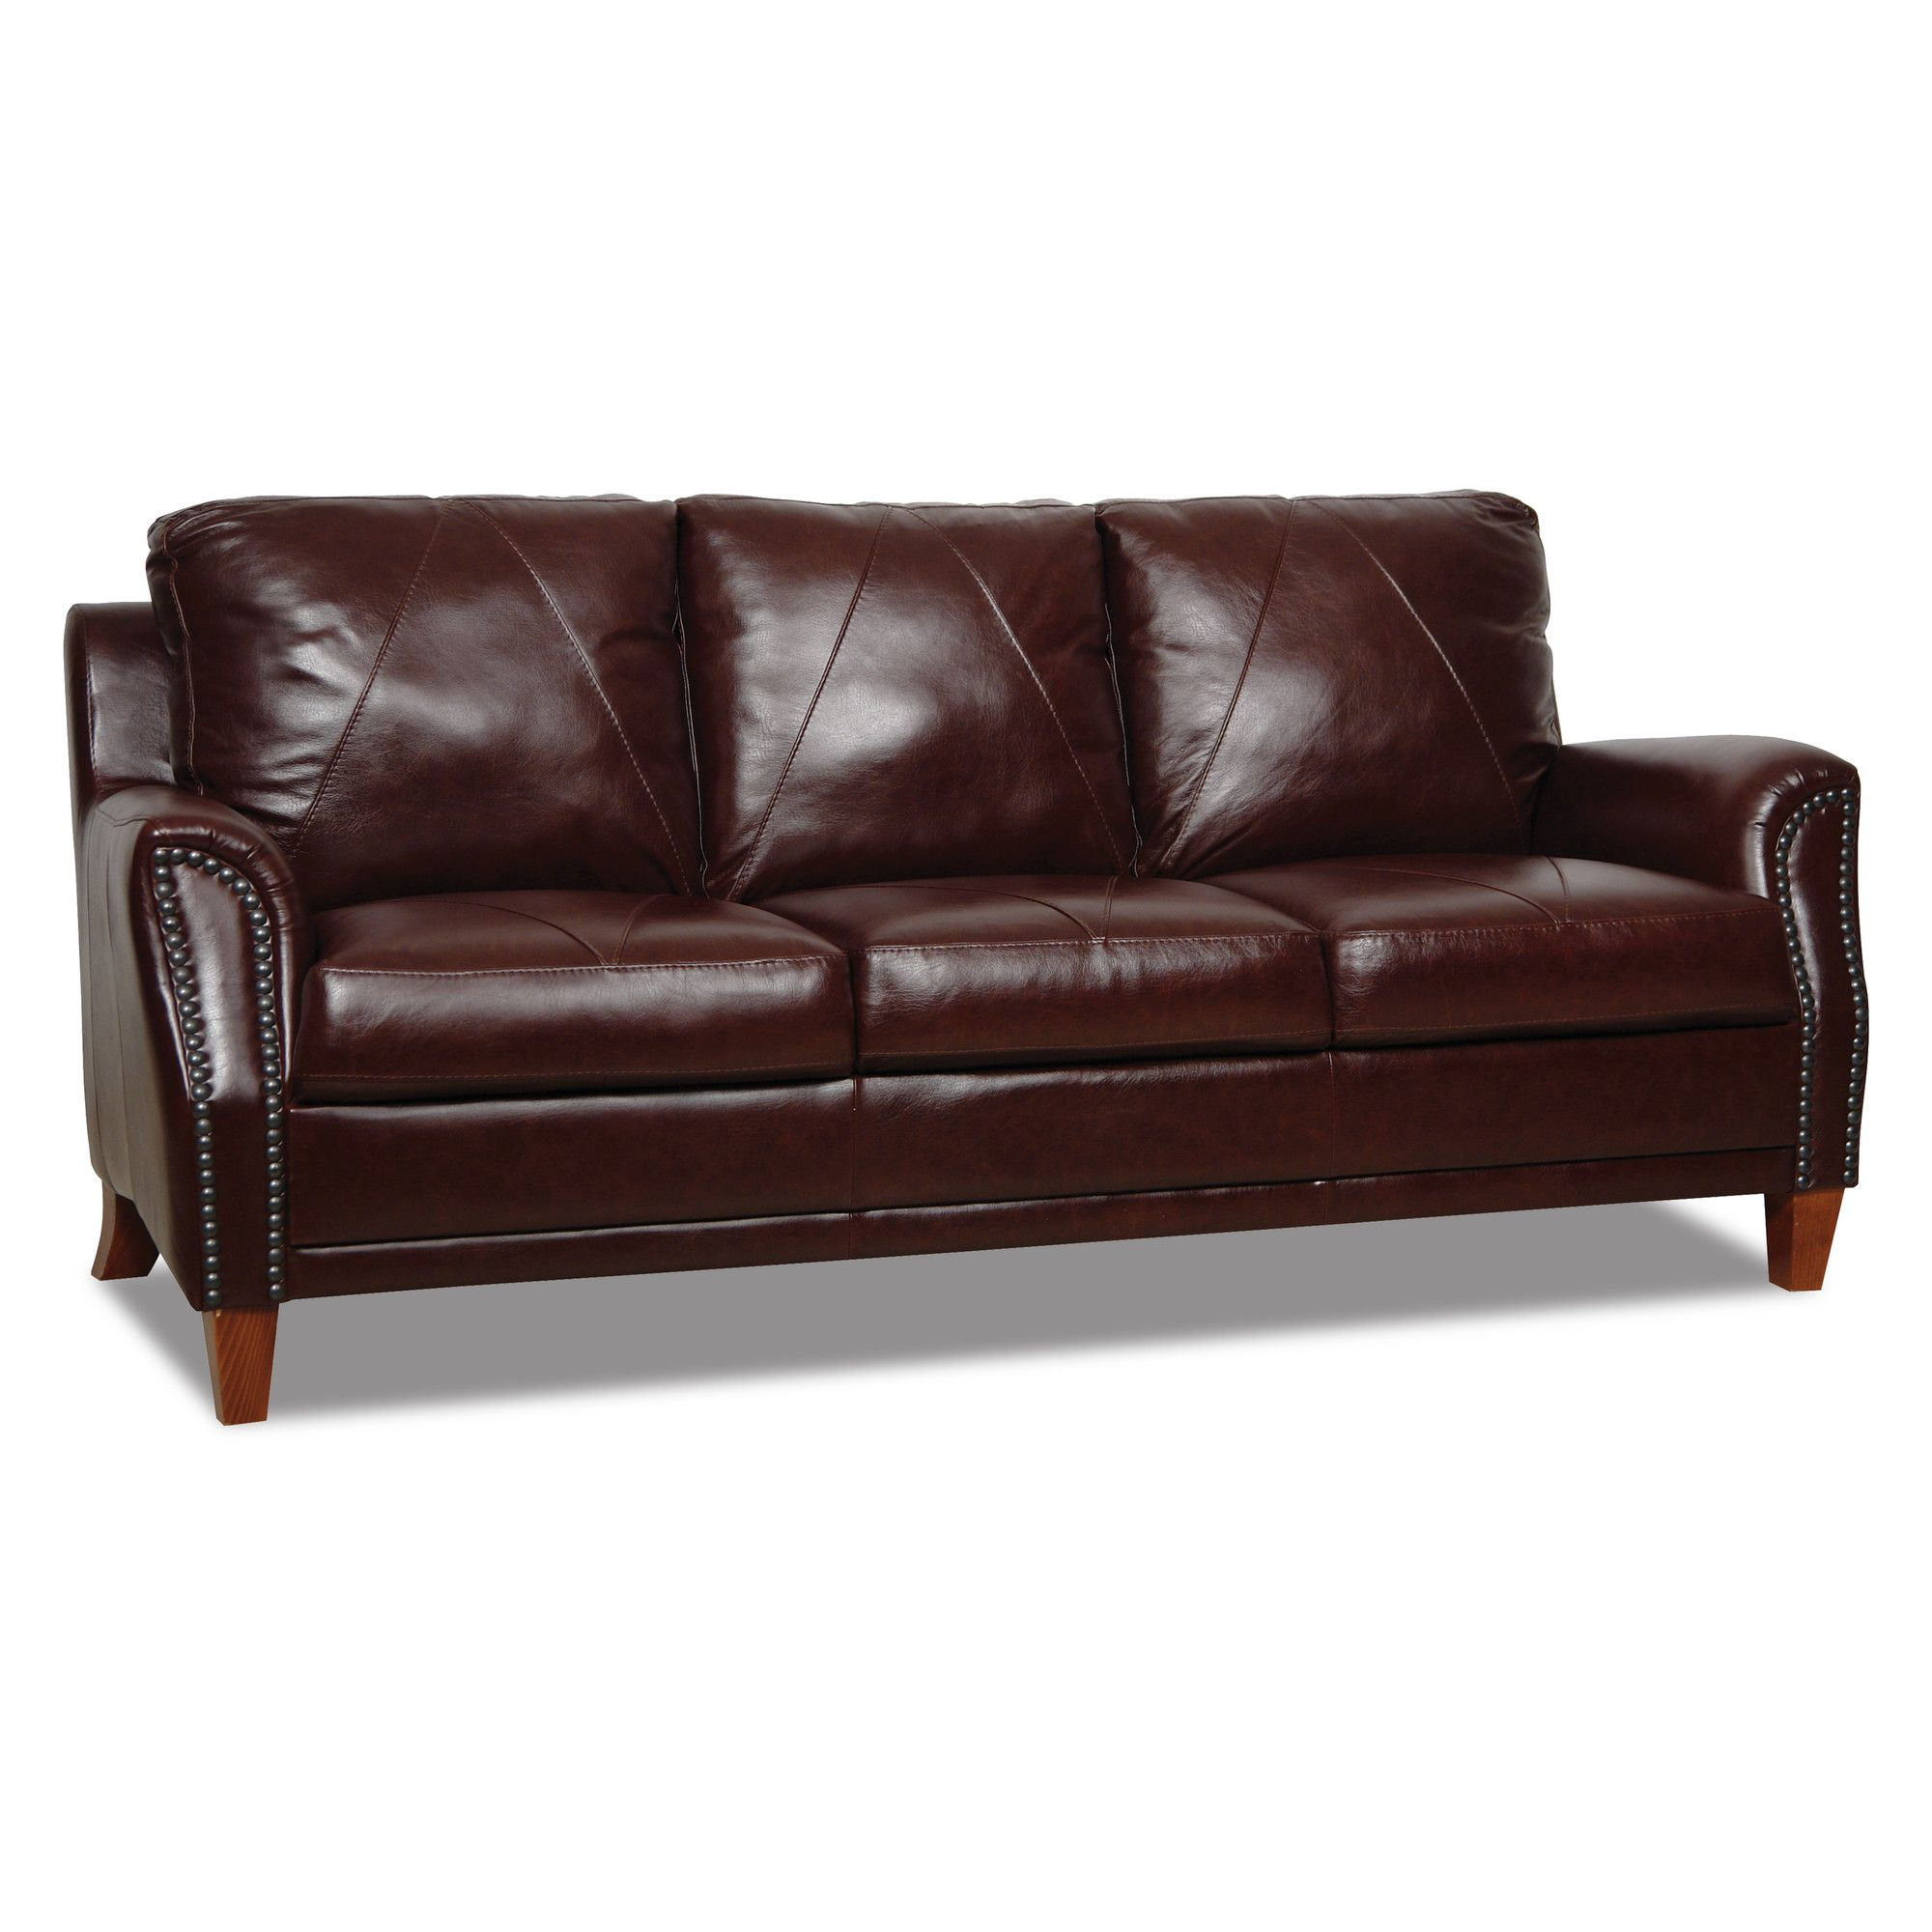 Luke Leather Austin Leather Modular Sofa & Reviews